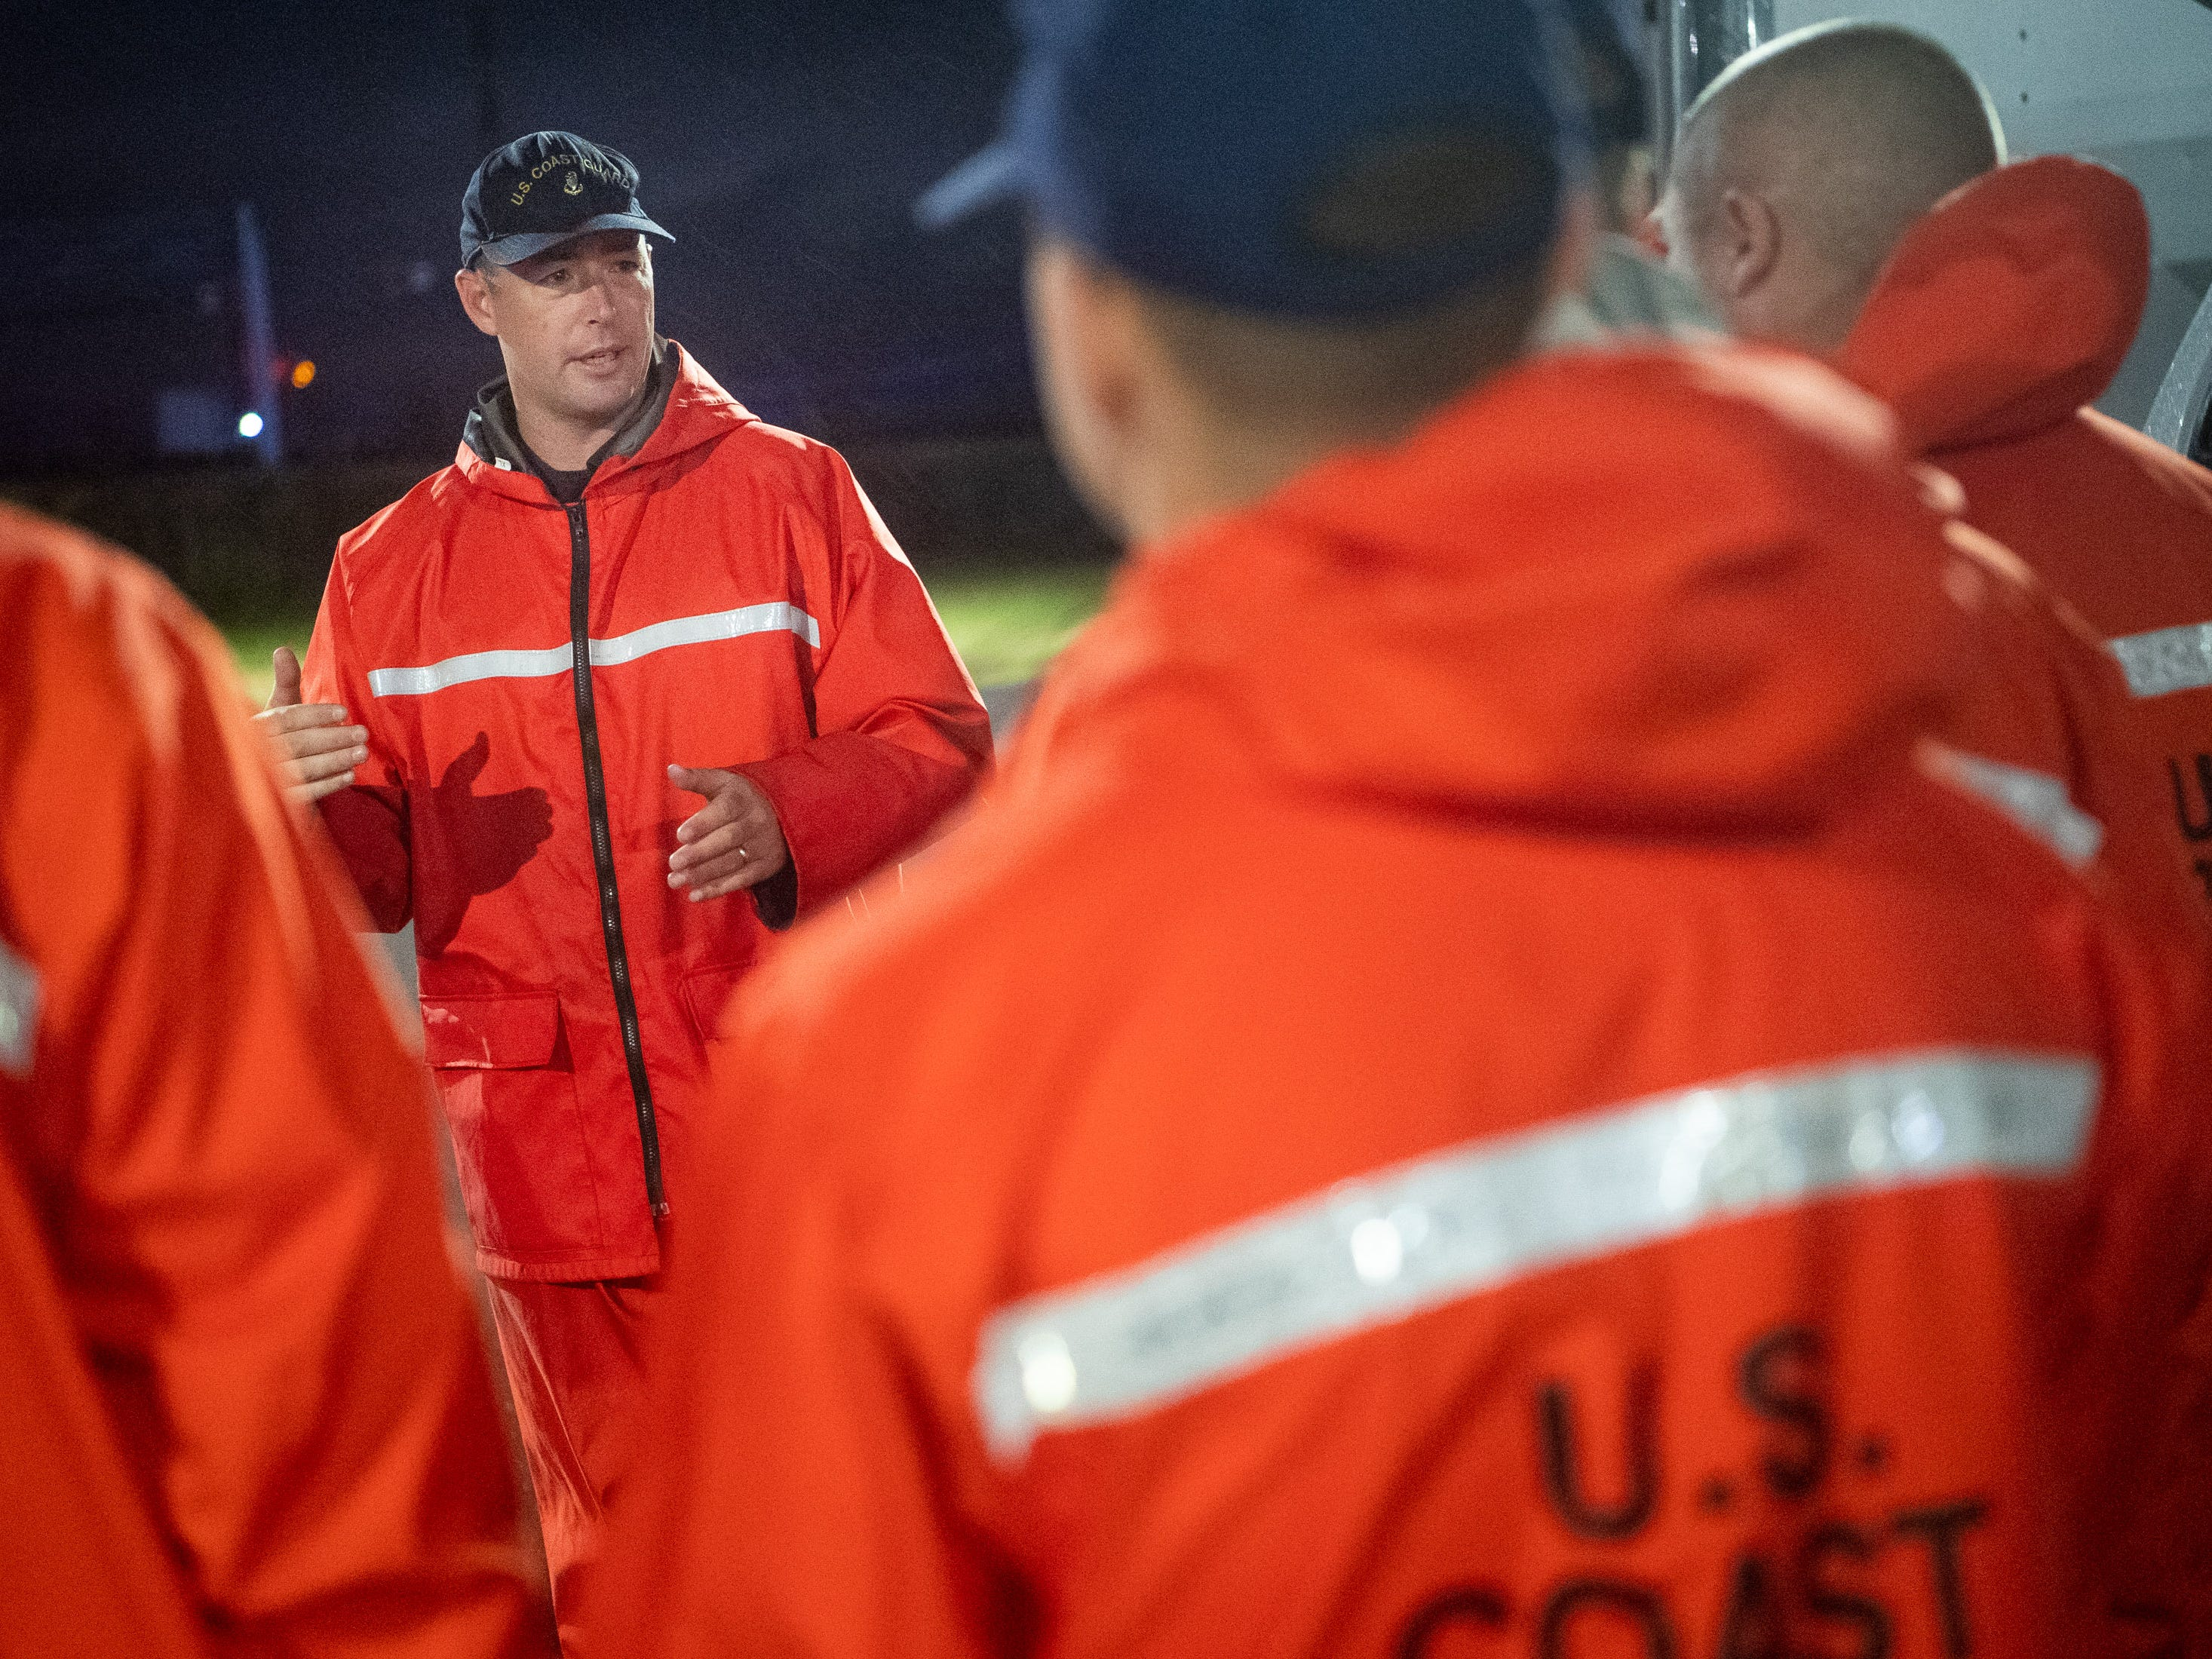 Coast Guard BMC Stephen Kelly, center, briefs his men before departing from their hotel in Lumberton, N.C., to conduct water rescues in Columbus County, Sunday, Sept. 16, 2018.